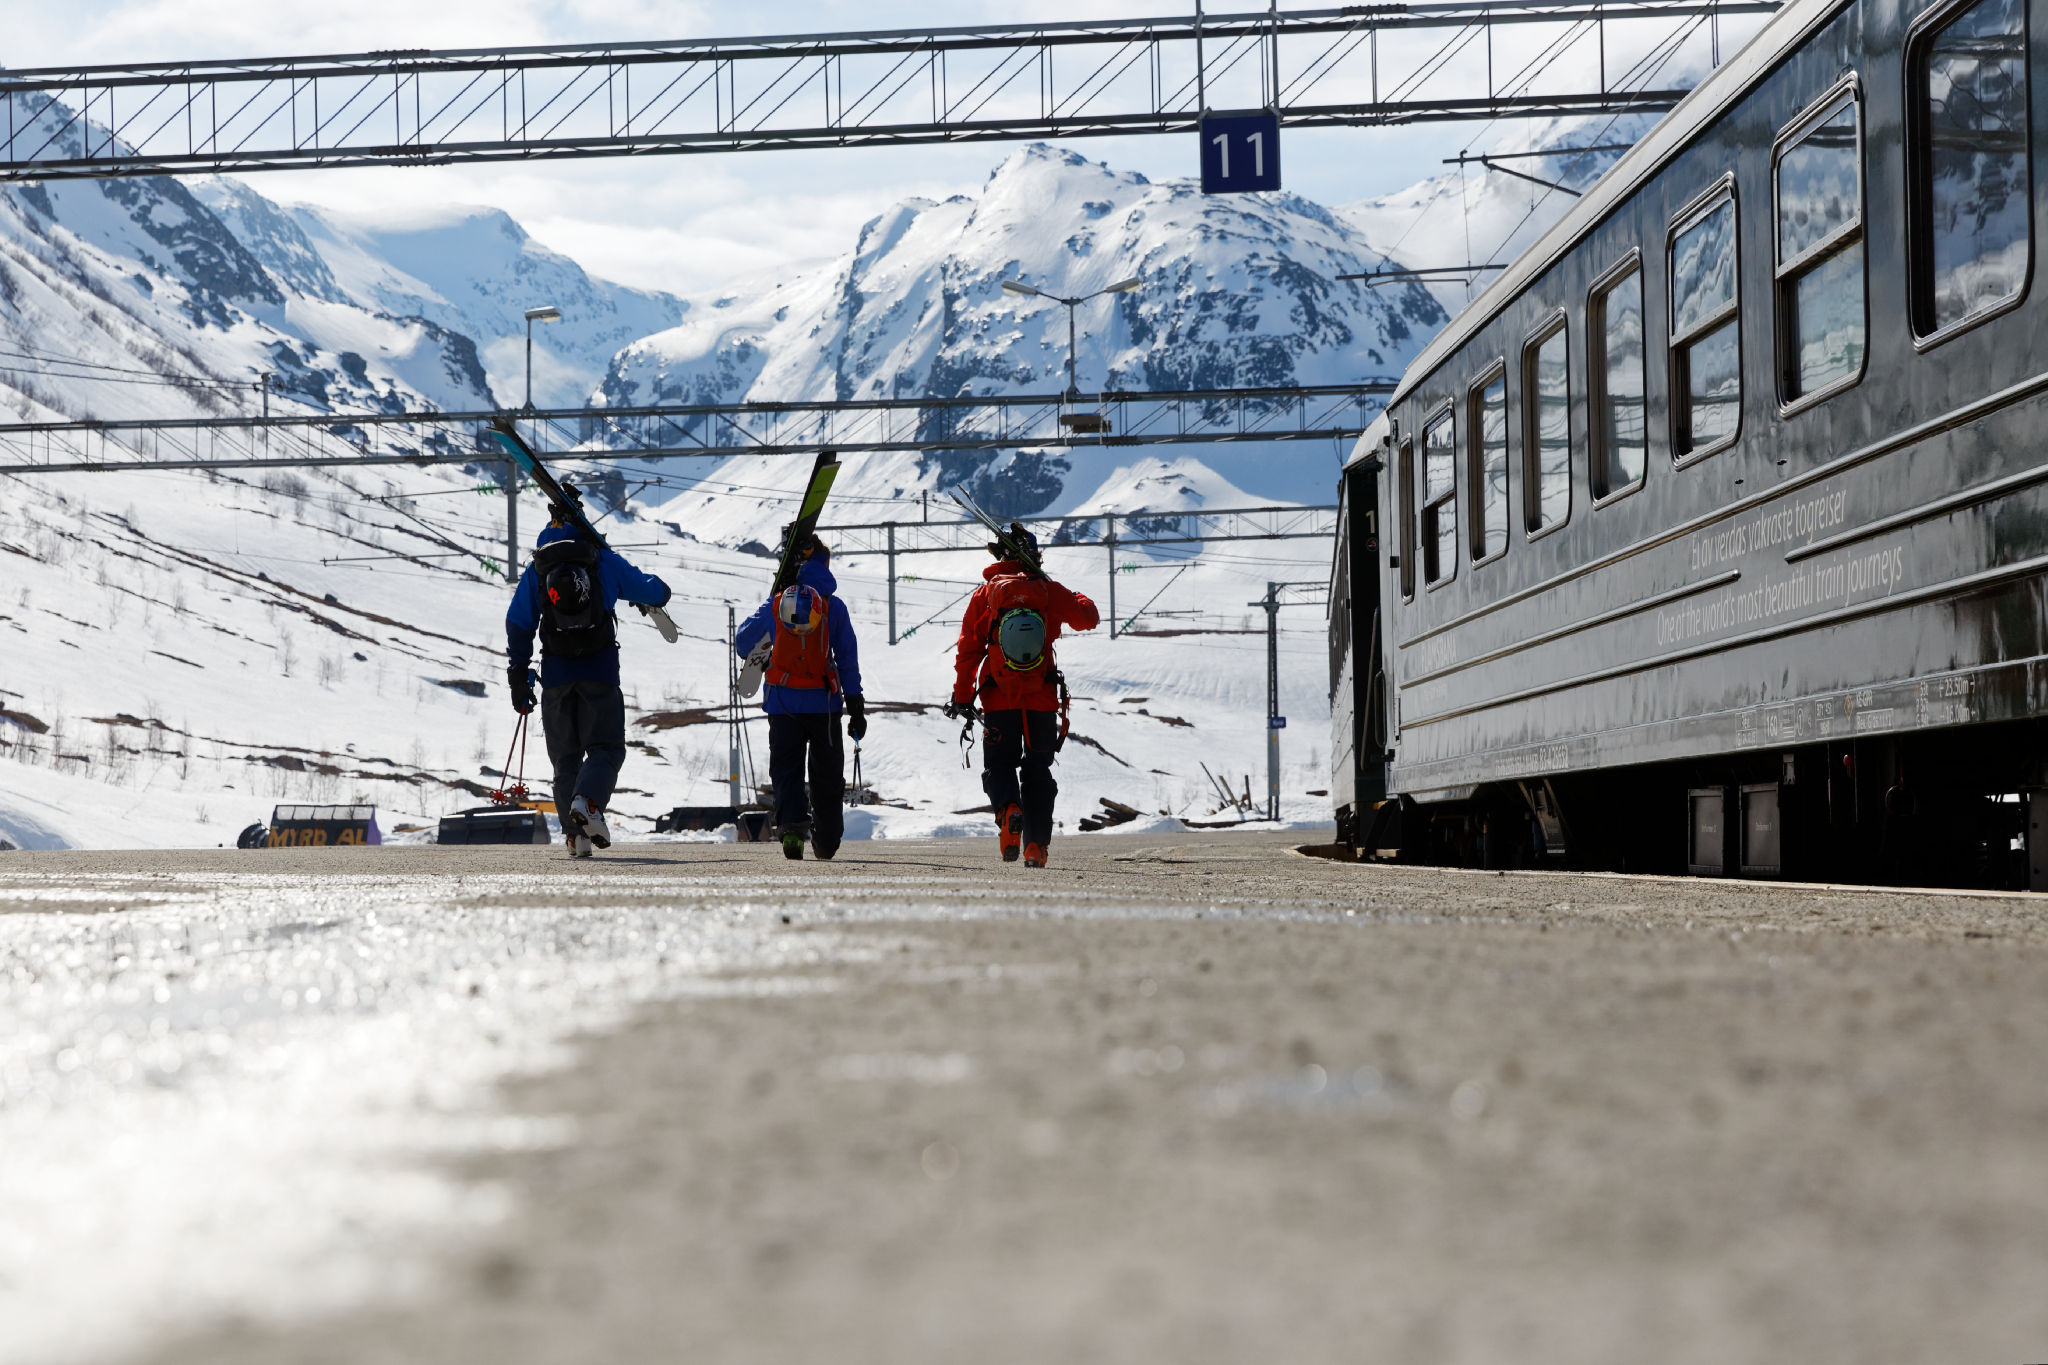 Norway Train The Best Way To Ski Tour Norway Is By Train